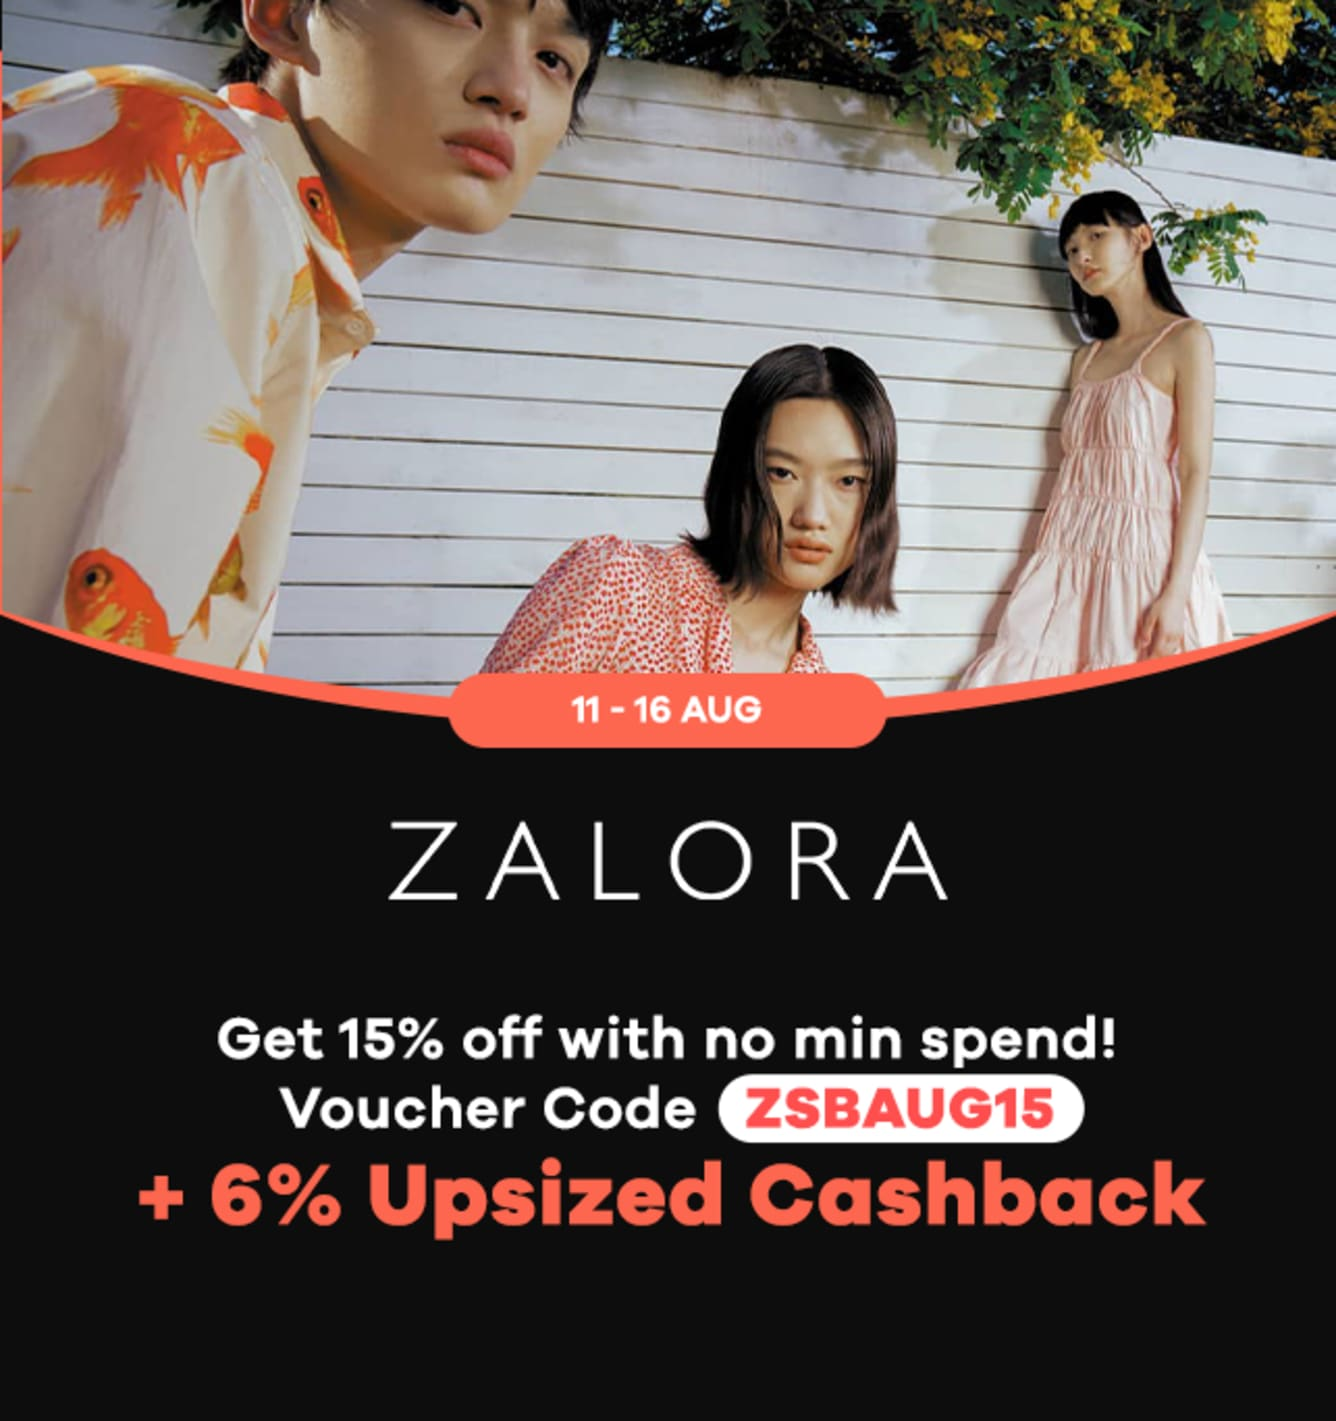 Zalora 12% Upsized Cashback Shopback